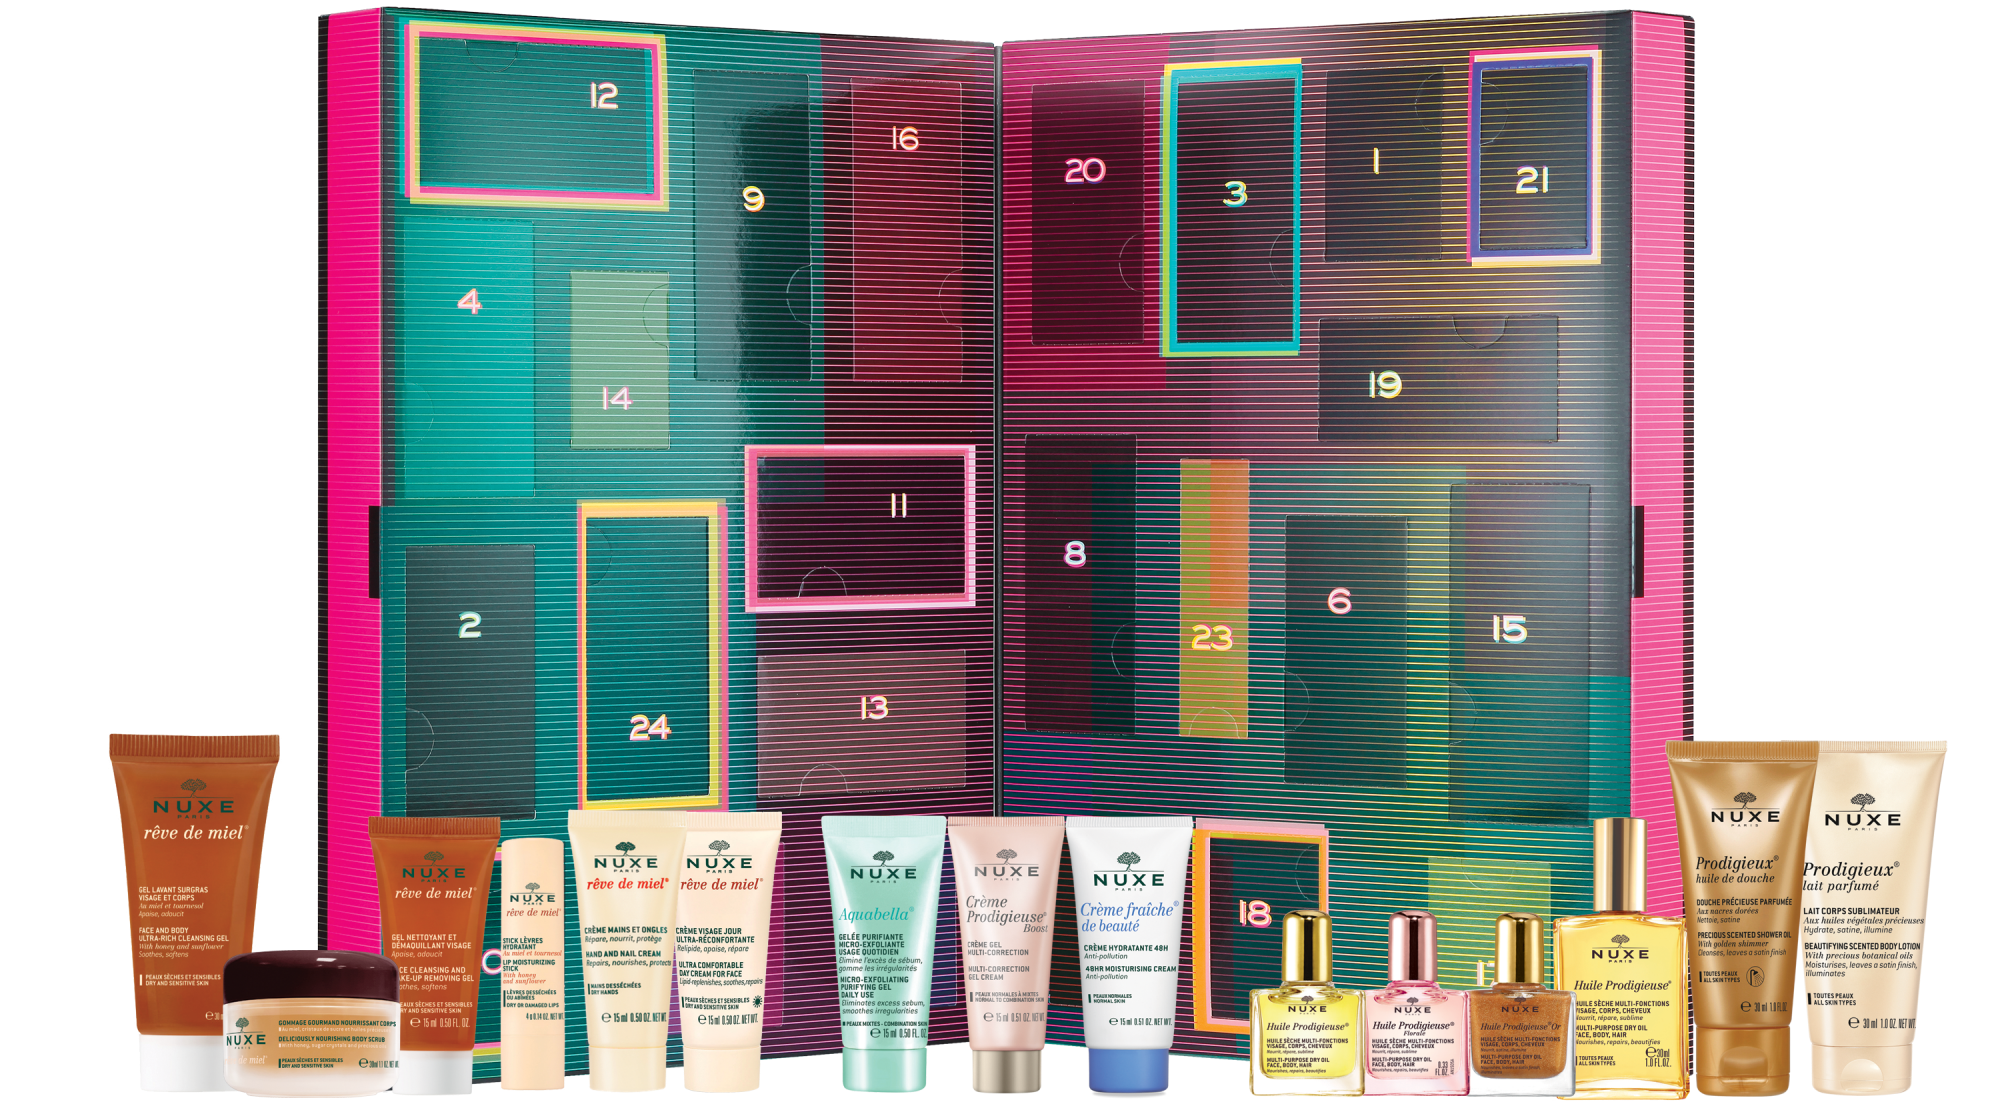 Nuxe beauty advent calendar 2019 - The LDN Diaries